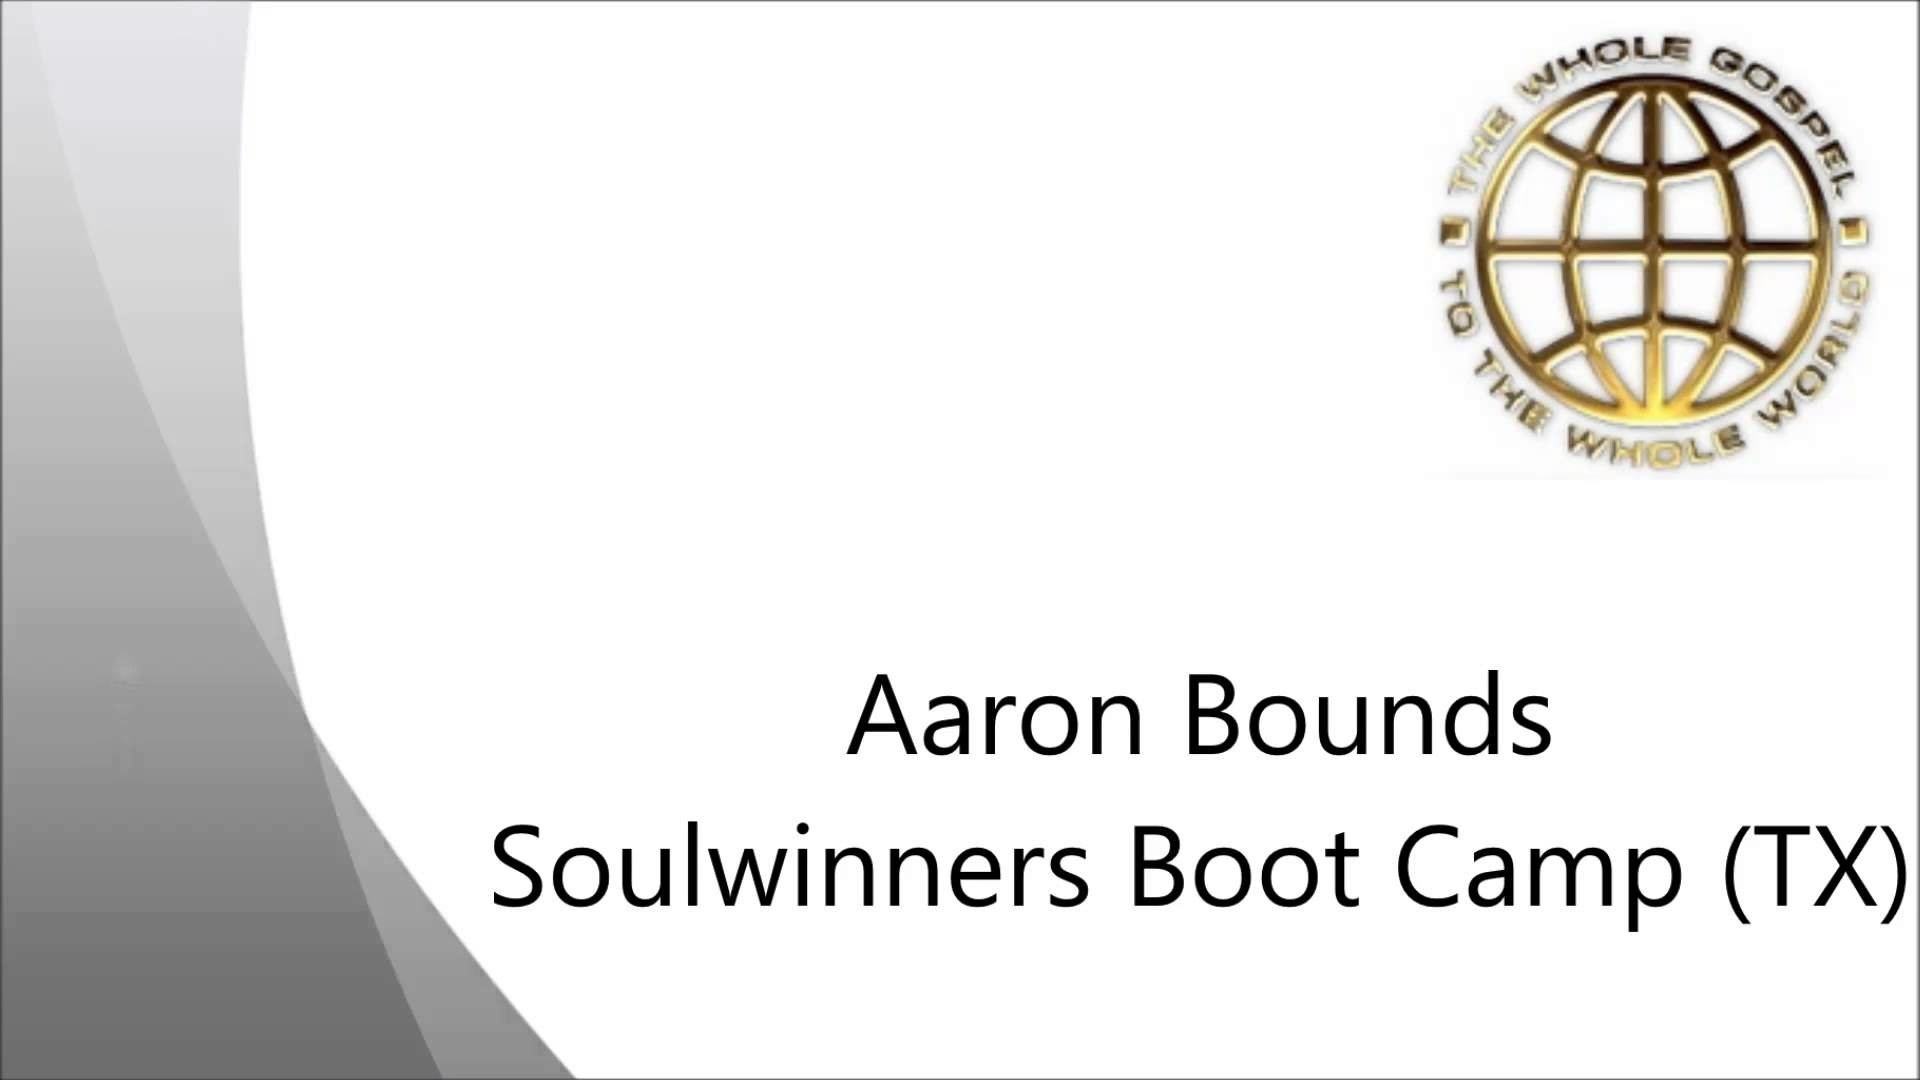 1920x1080 Aaron Bounds - Soulwinners Bootcamp - TX (UPCI) - FULL MESSAGE